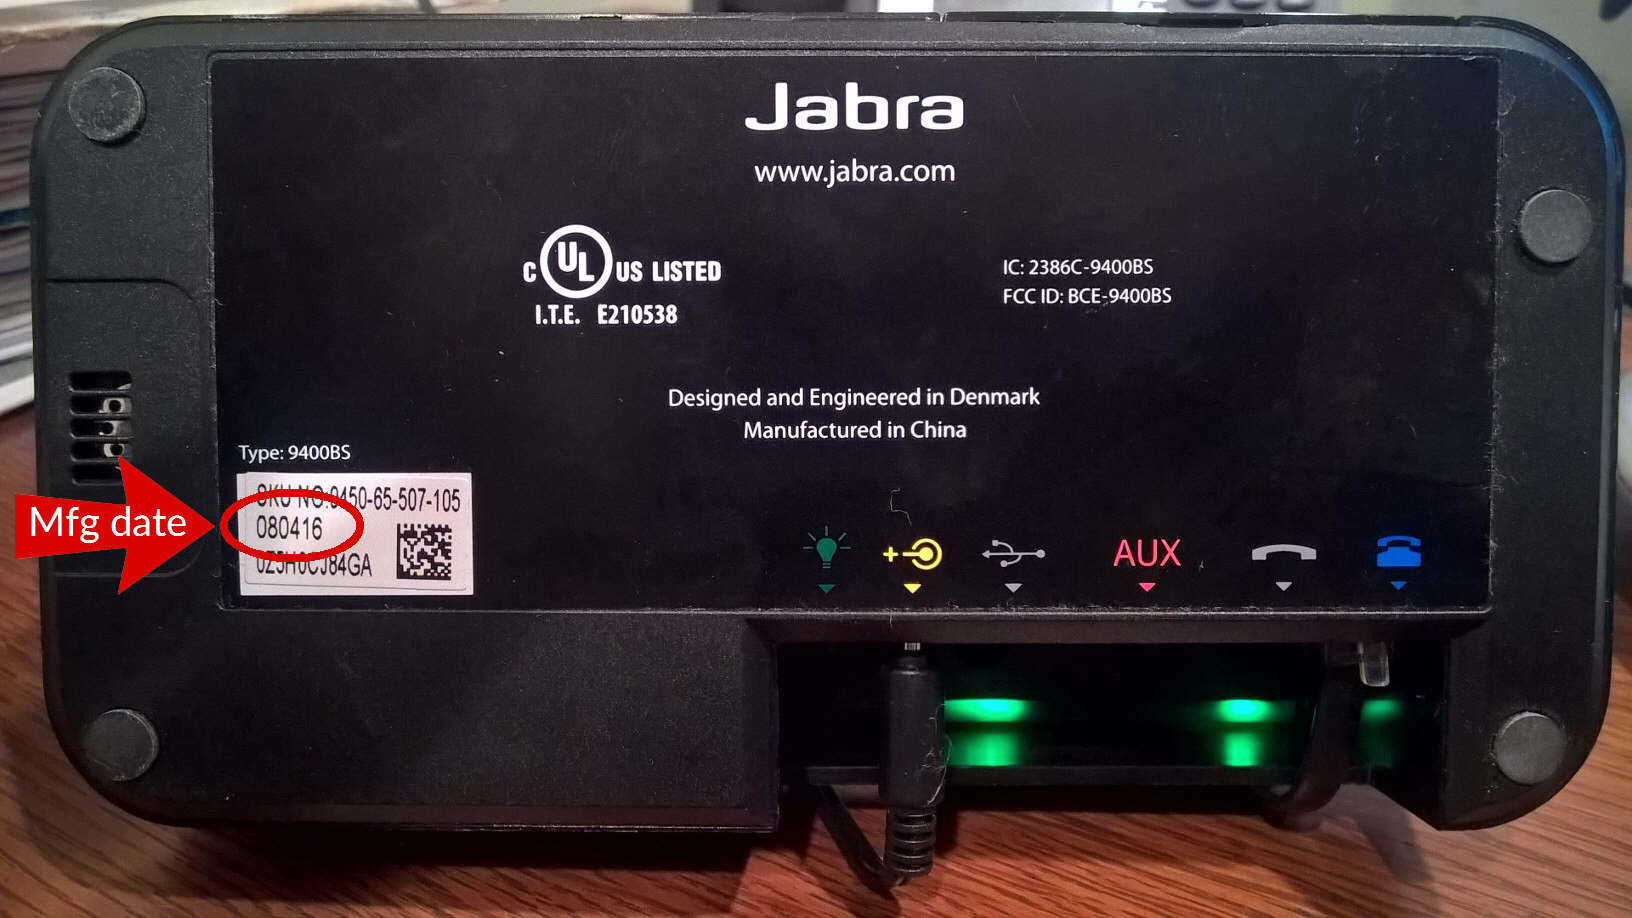 Jabra Pro 9450 Manufacture Date Location Nrg Teleresources